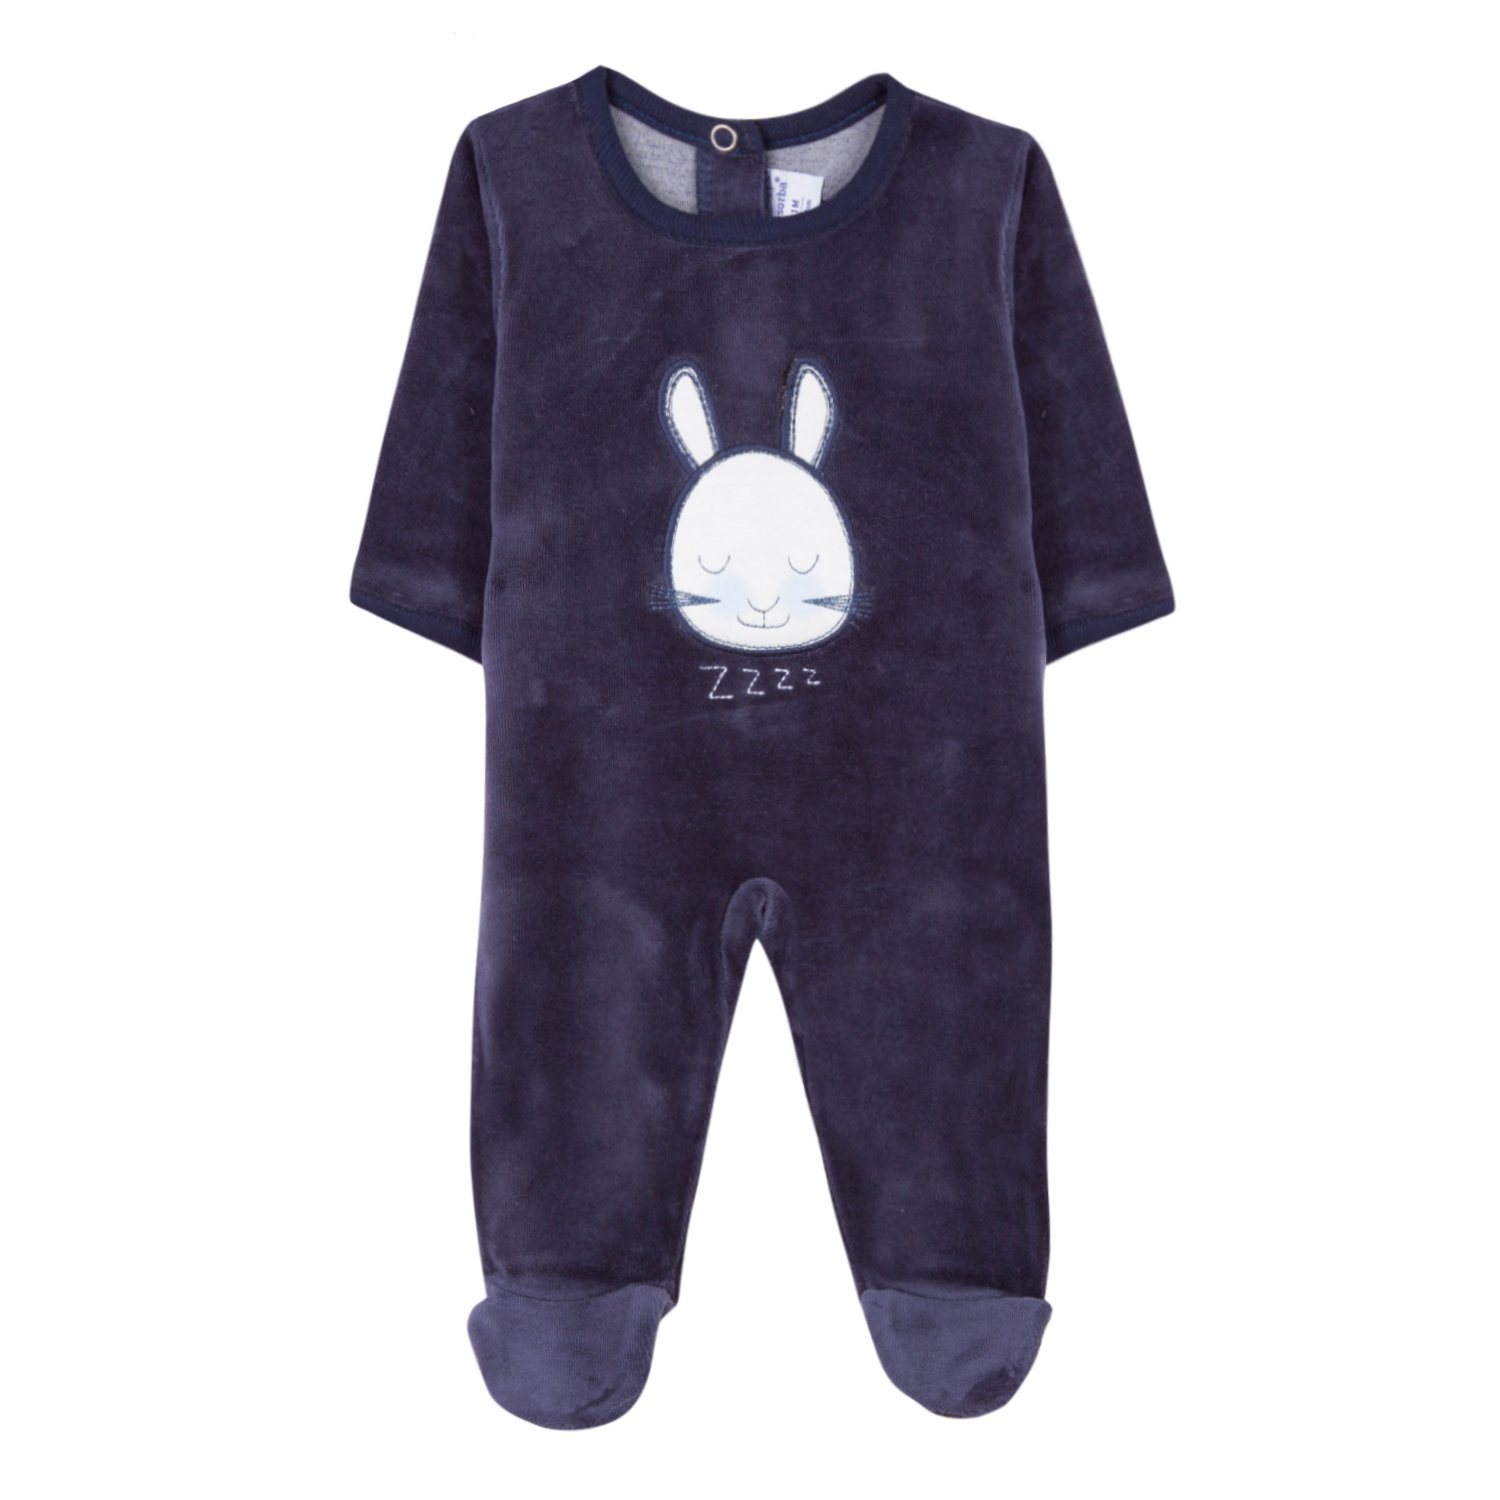 Absorba Boutique Baby Sleepsuit 9M54013